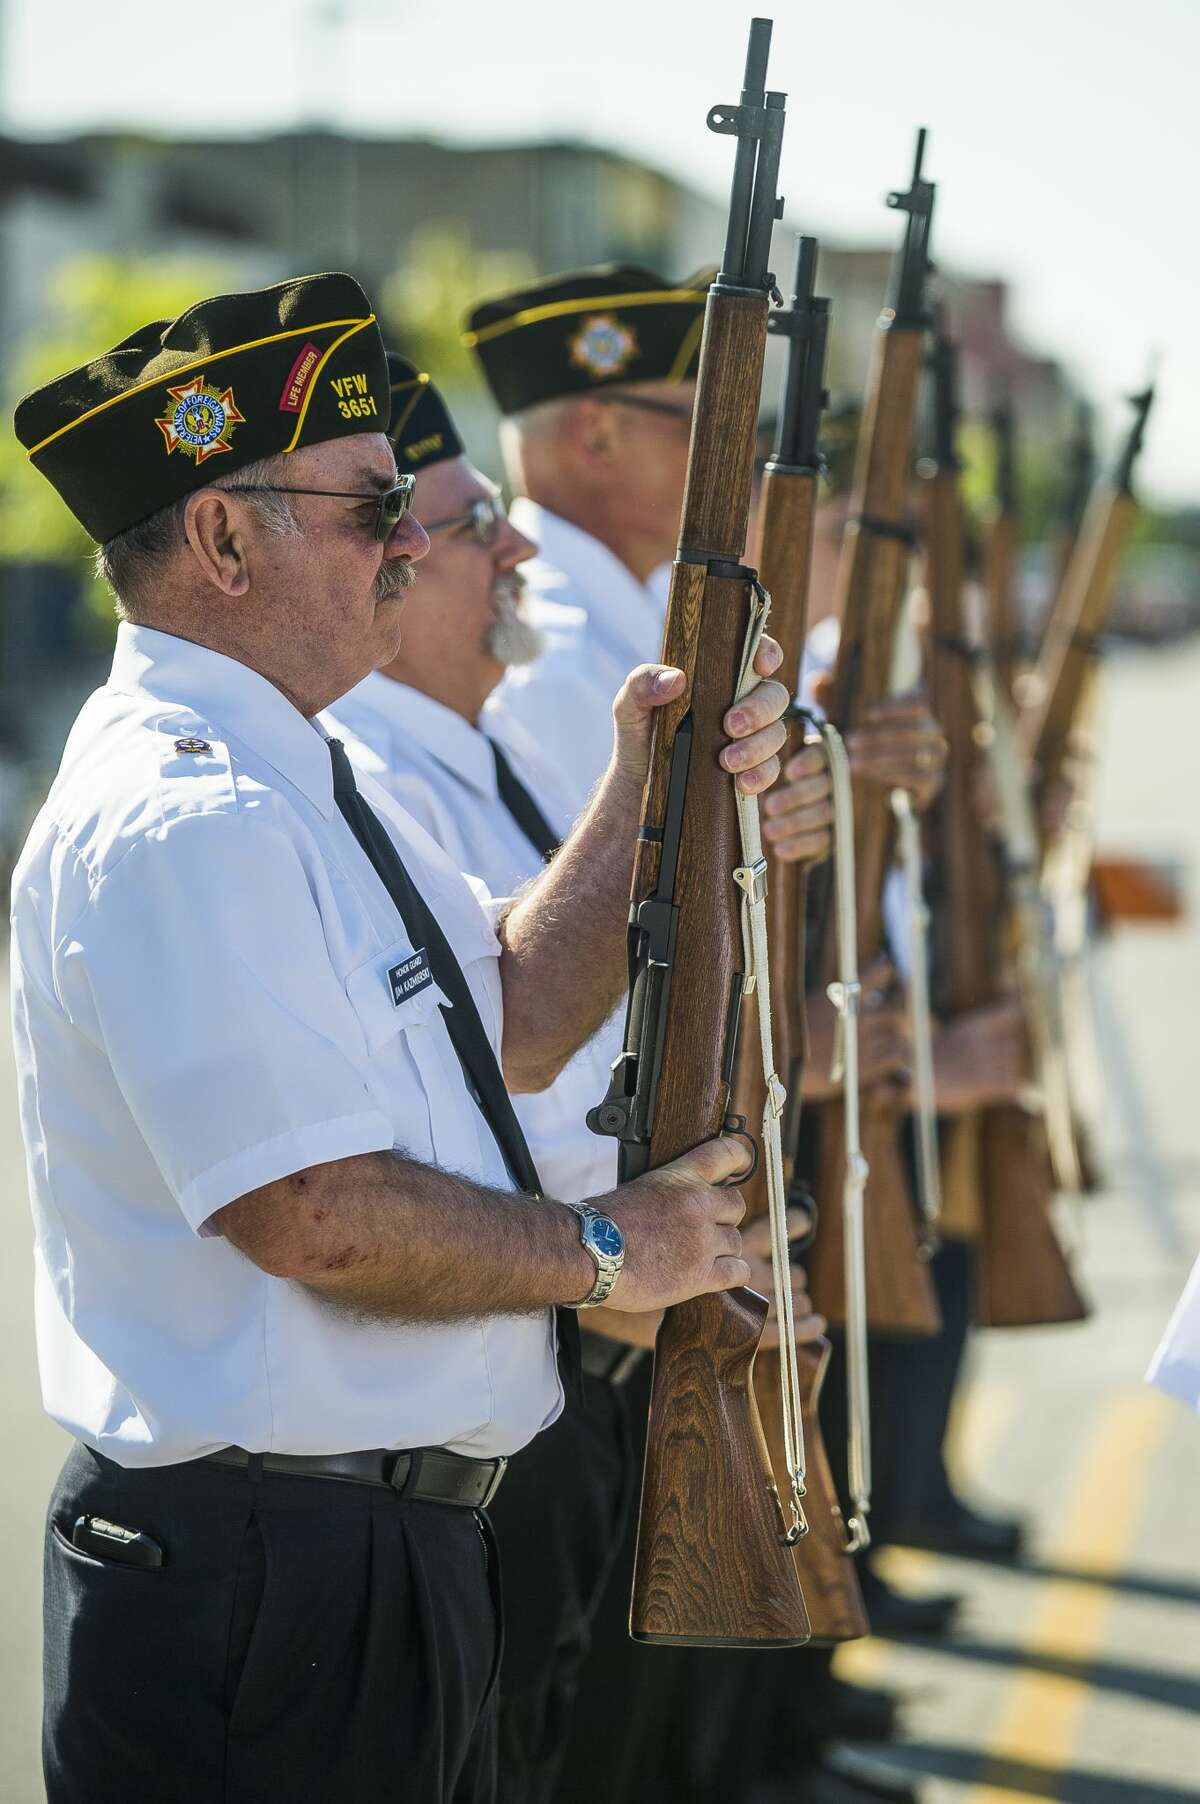 Veterans and community members gather for a presentation of wreaths at the Midland County Veterans Memorial on Monday, May 27, 2019 in Midland. (Katy Kildee/kkildee@mdn.net)